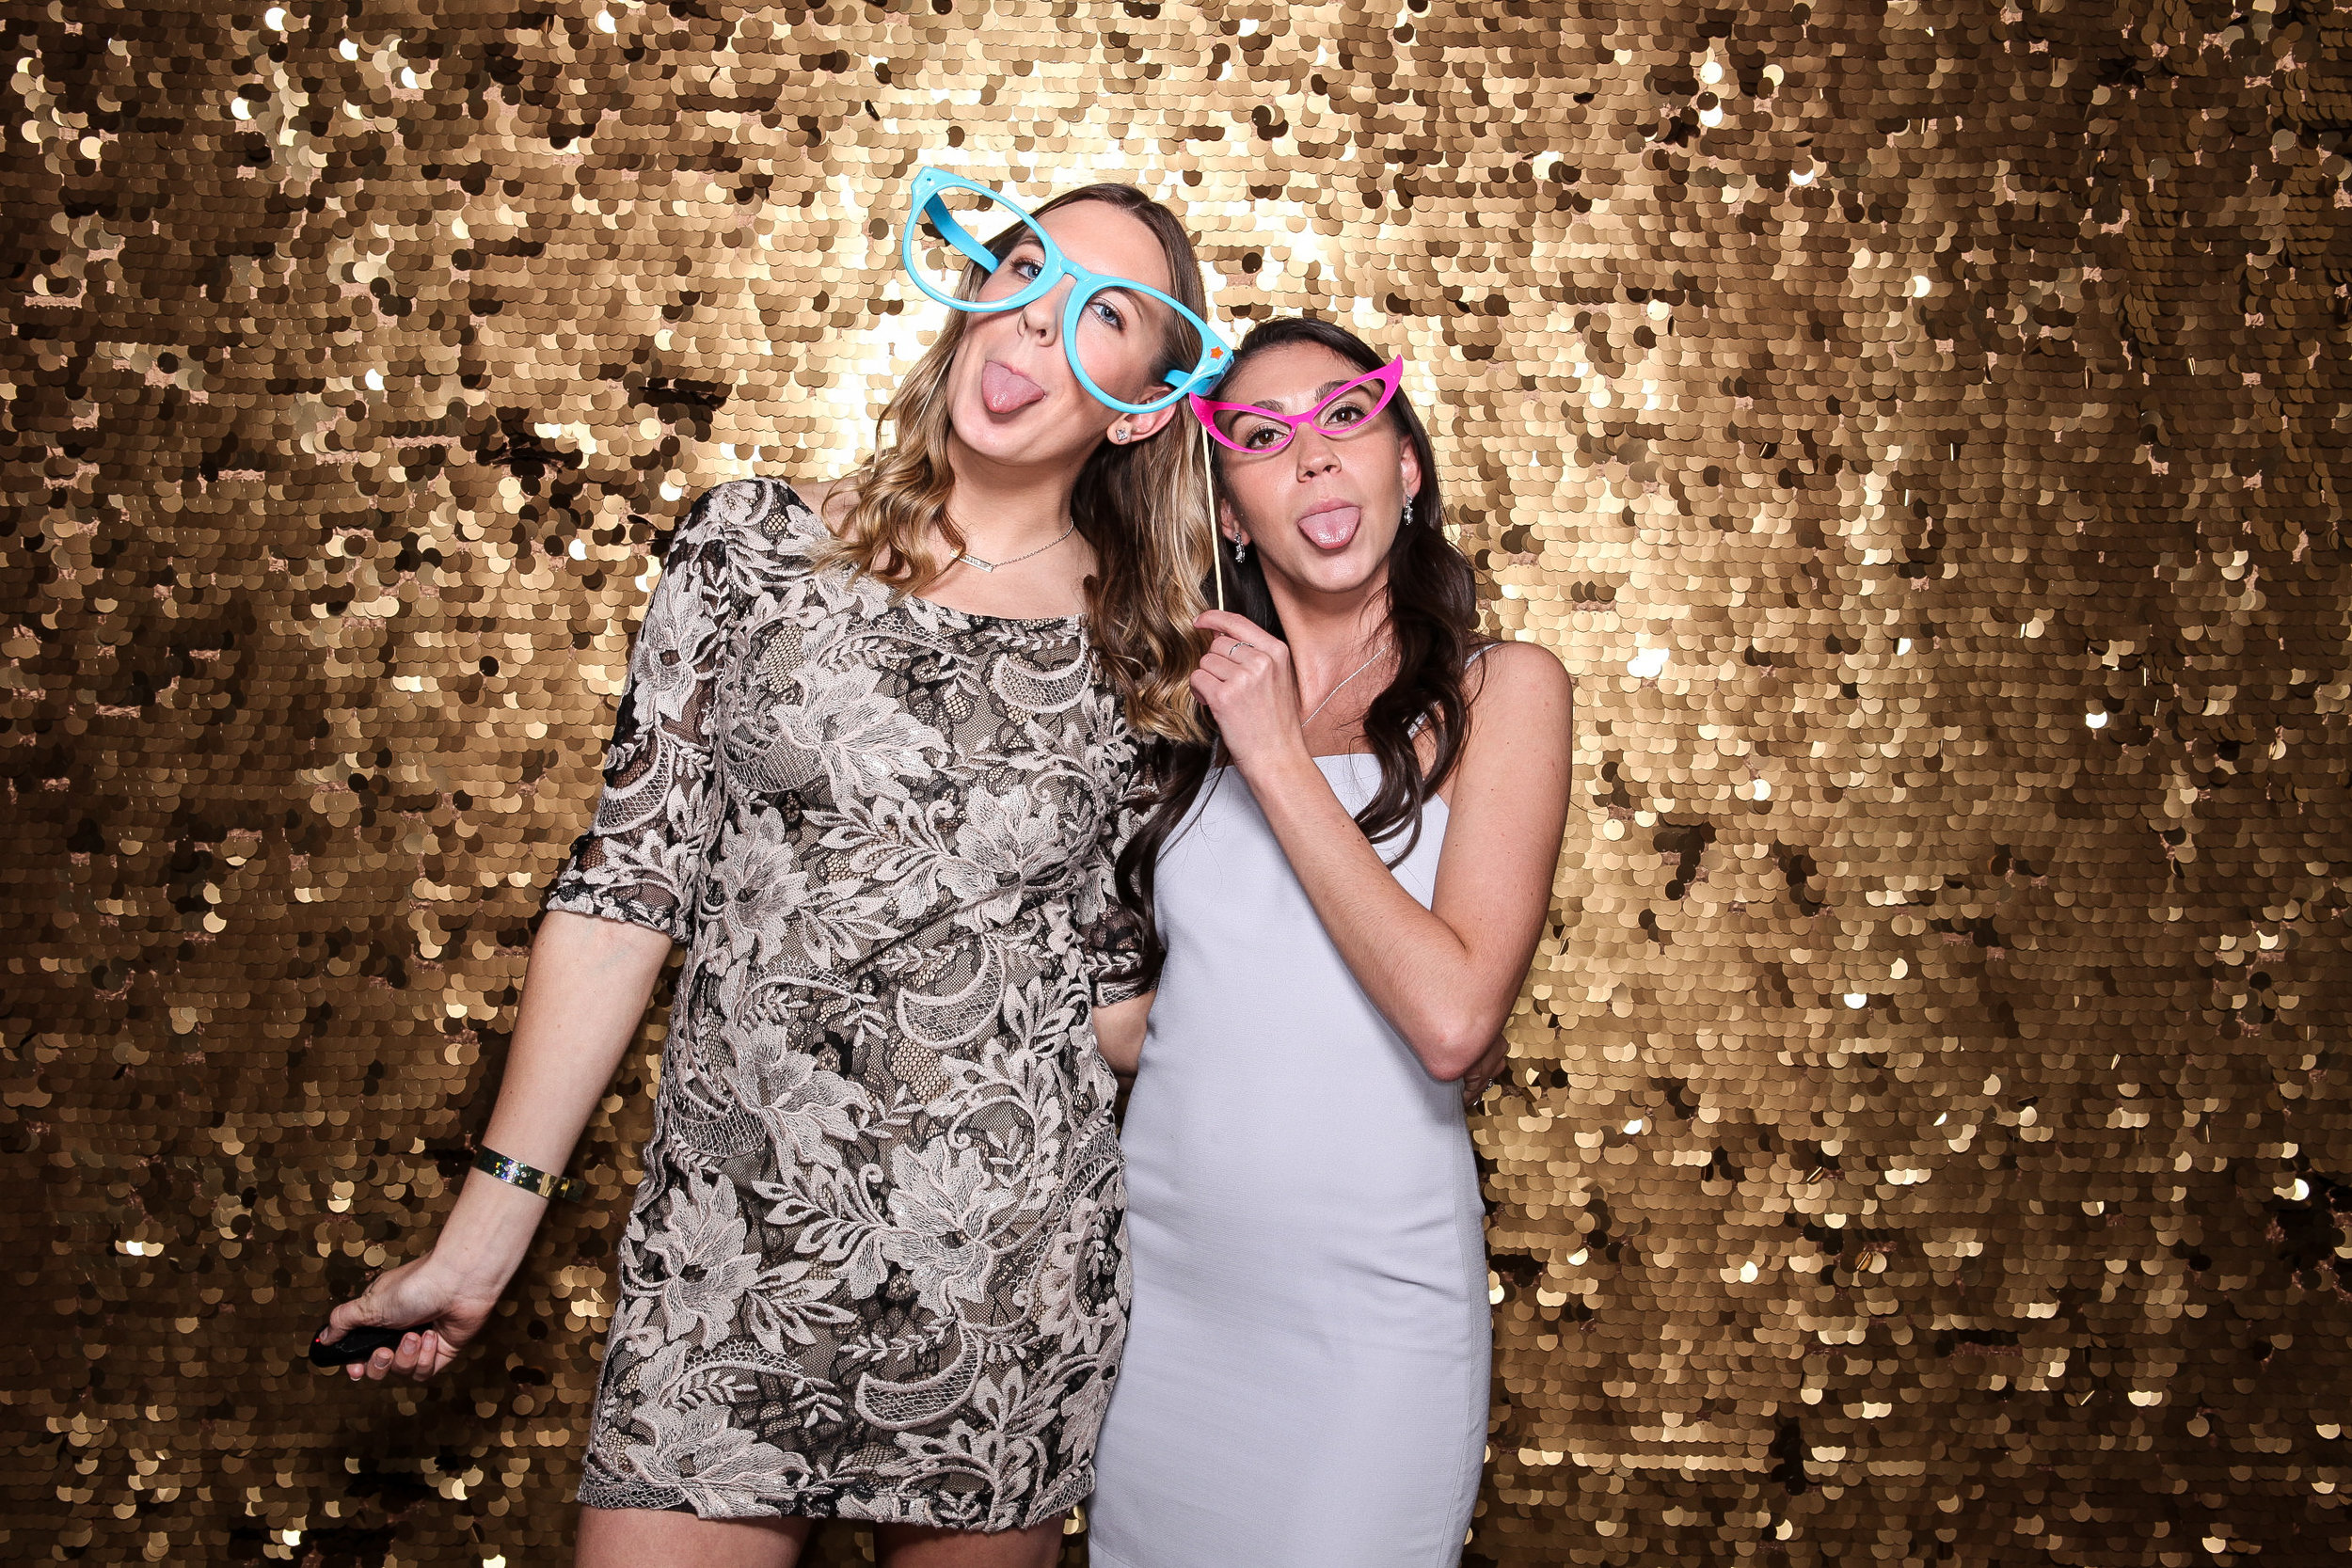 20190503_Adelphi_Senior_Formal-206.jpg